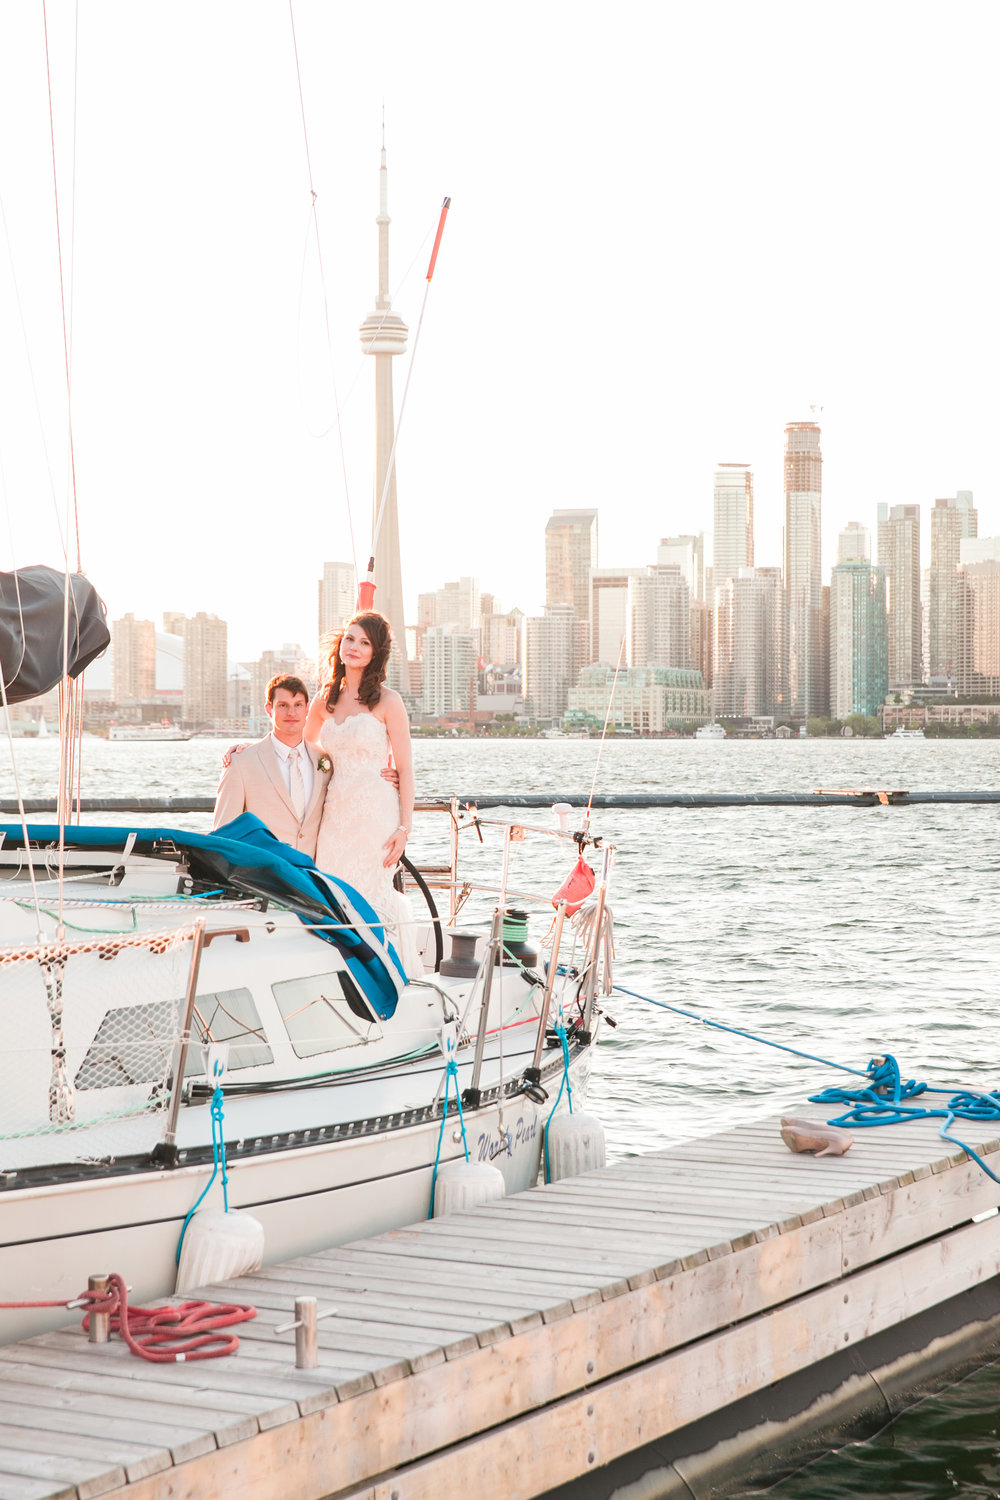 Sunset photos of the bride and groom in Toronto